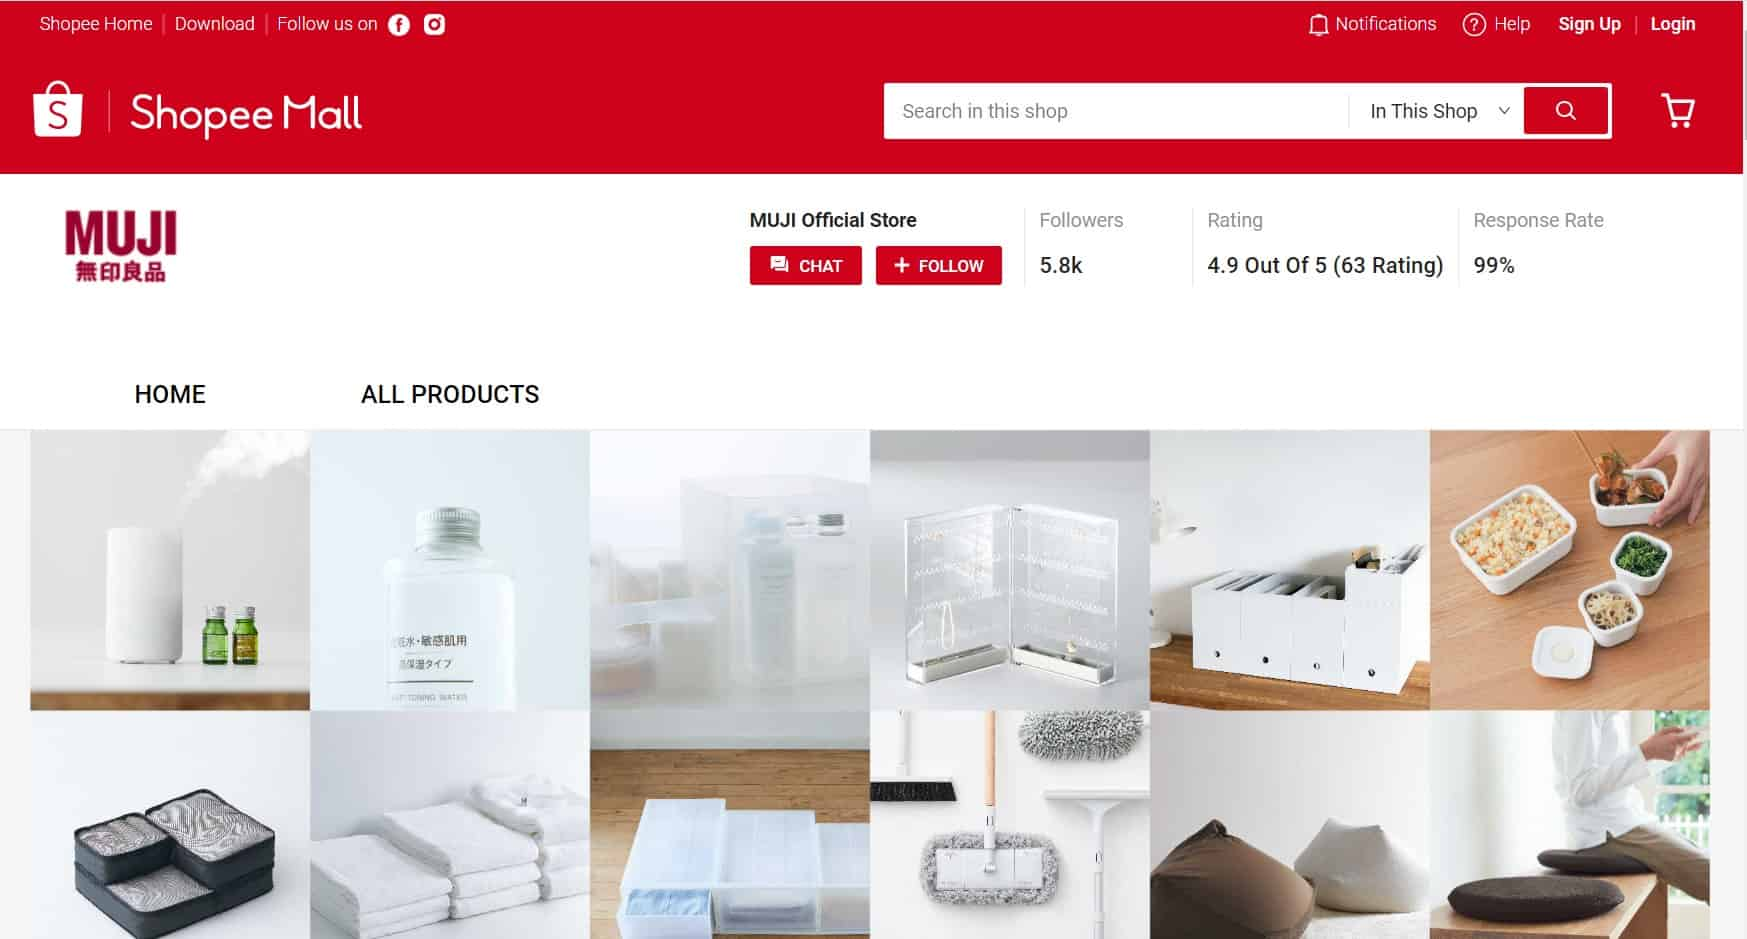 MUJI Official Store on Shopee